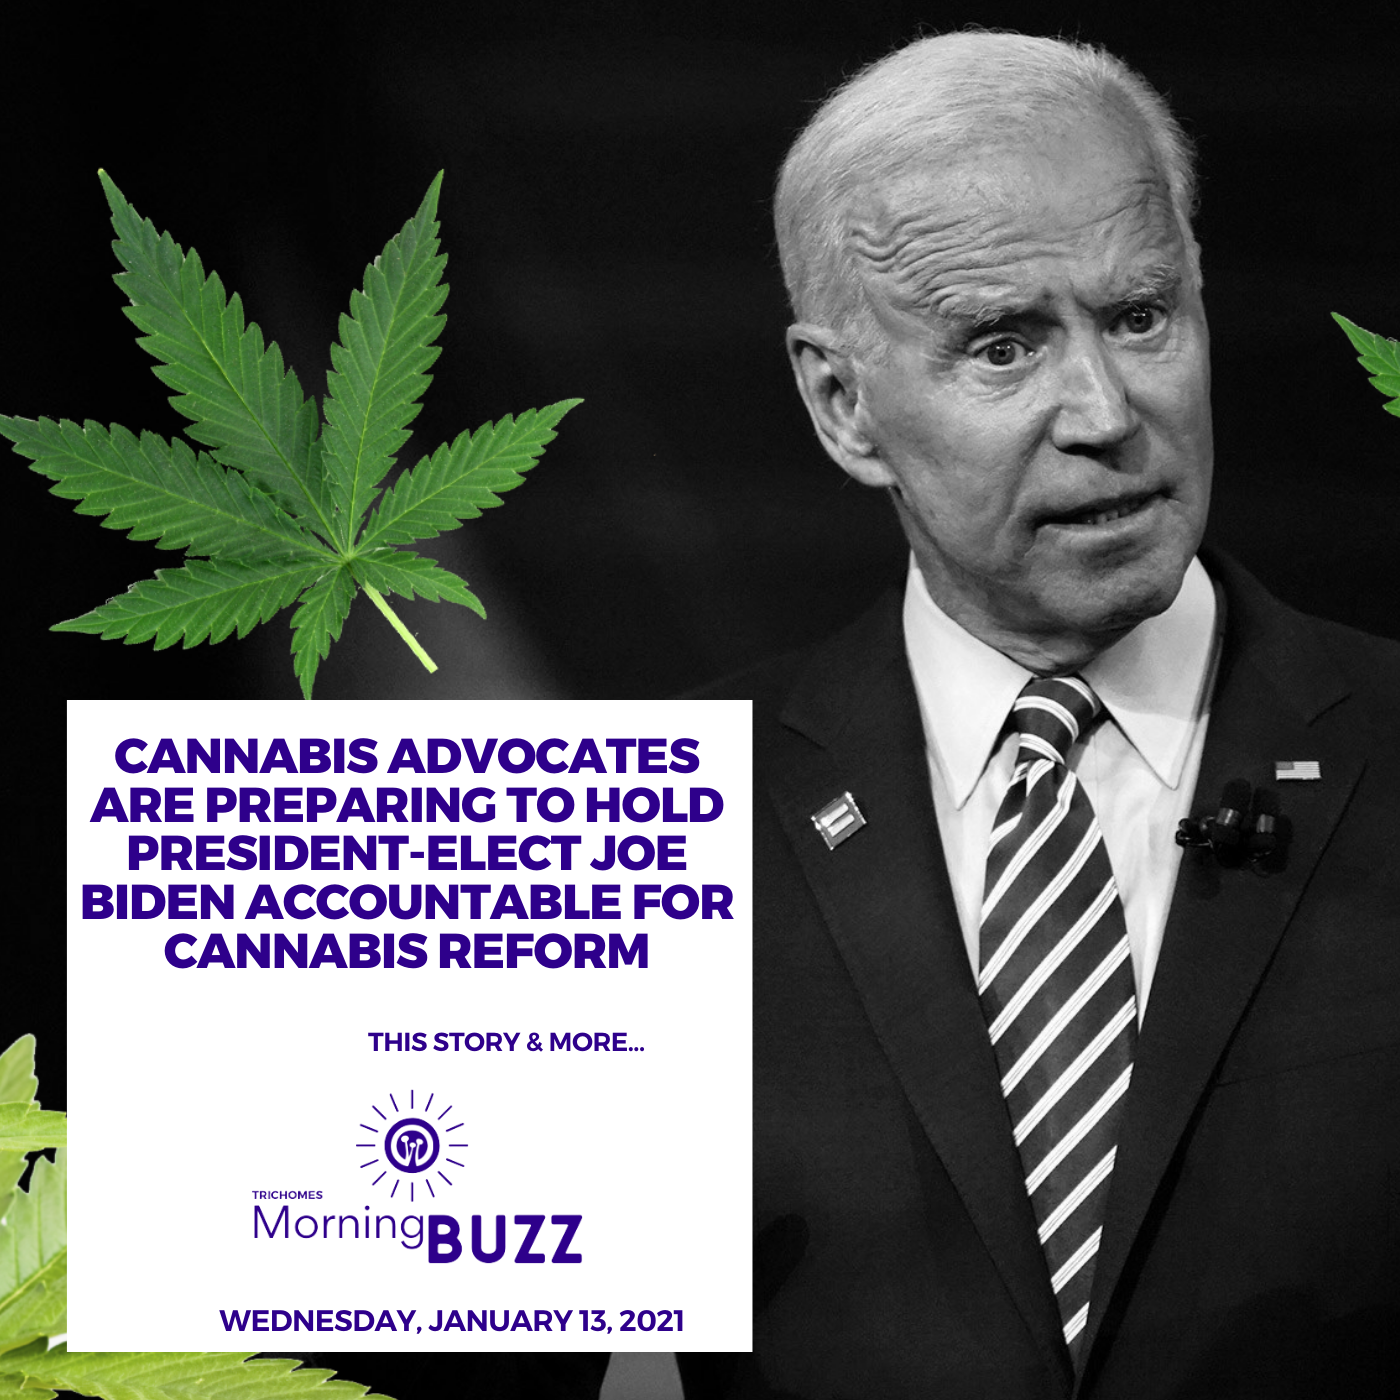 Cannabis Advocates are Preparing to Hold President-elect Joe Biden Accountable for Cannabis Reform  - TRICHOMES Morning Buzz show art